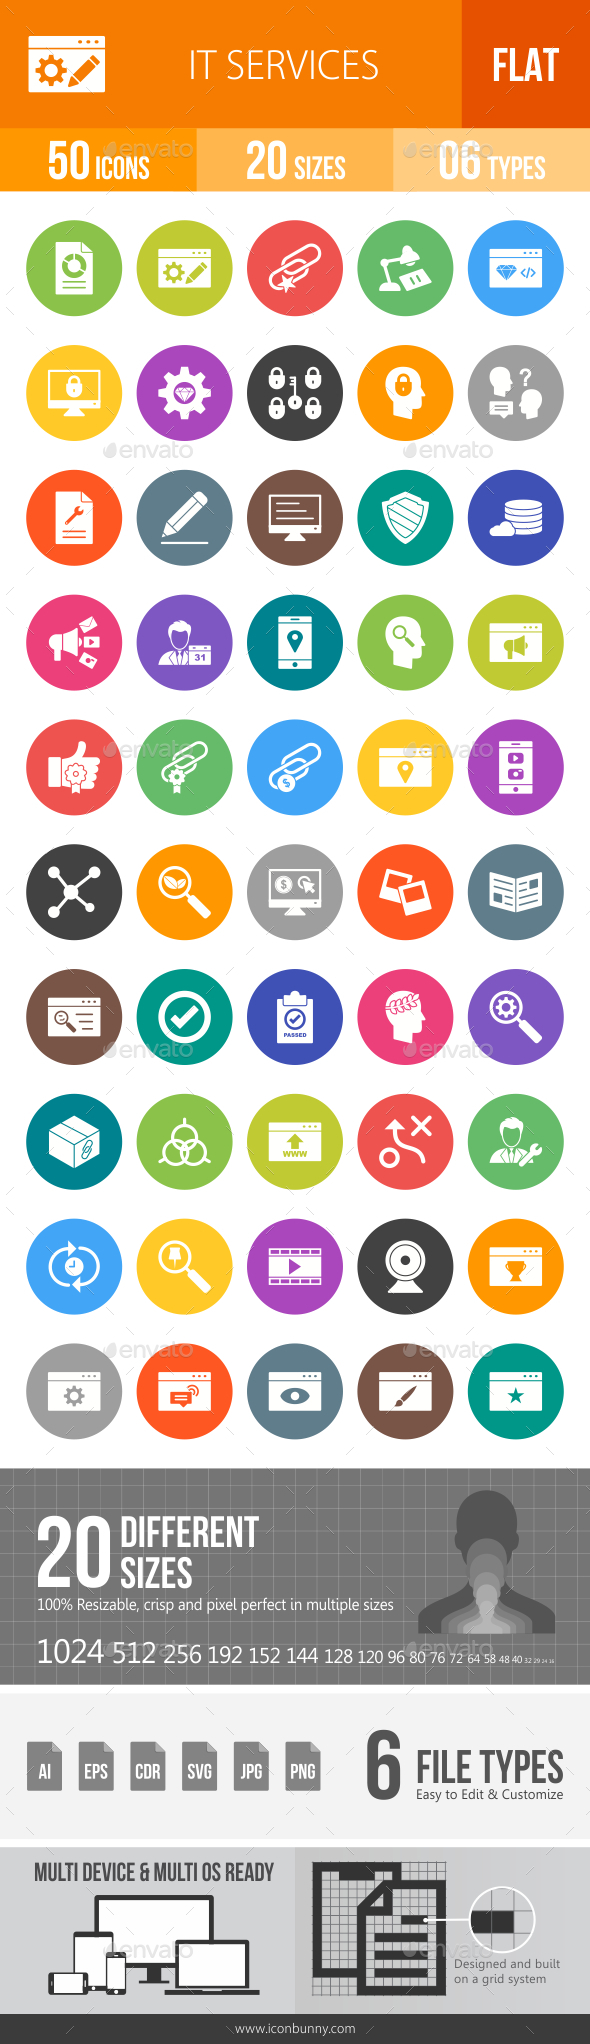 IT Services Flat Round Icons - Icons